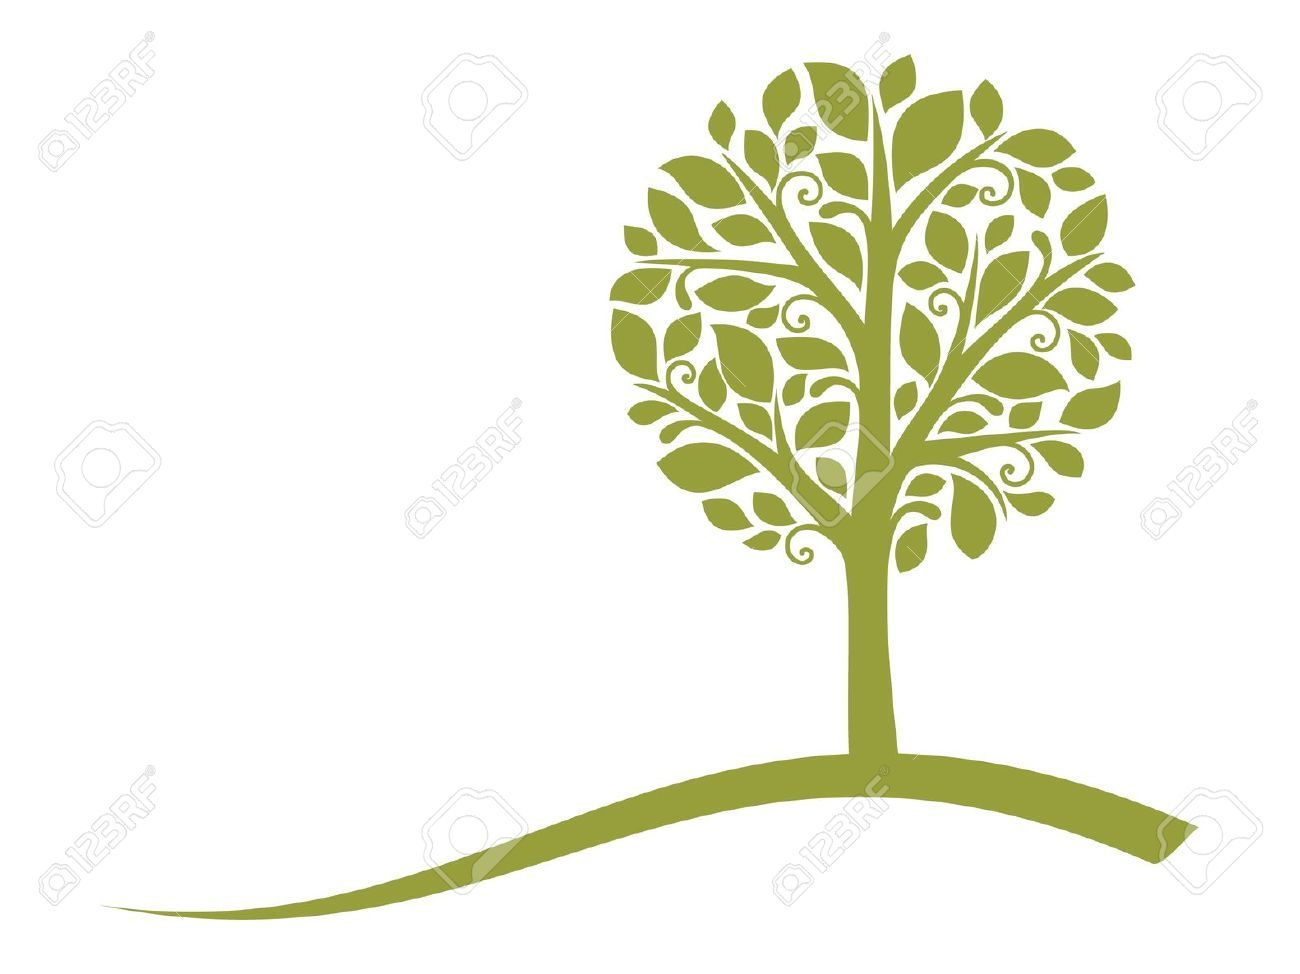 Image result for free tree logo clipart.